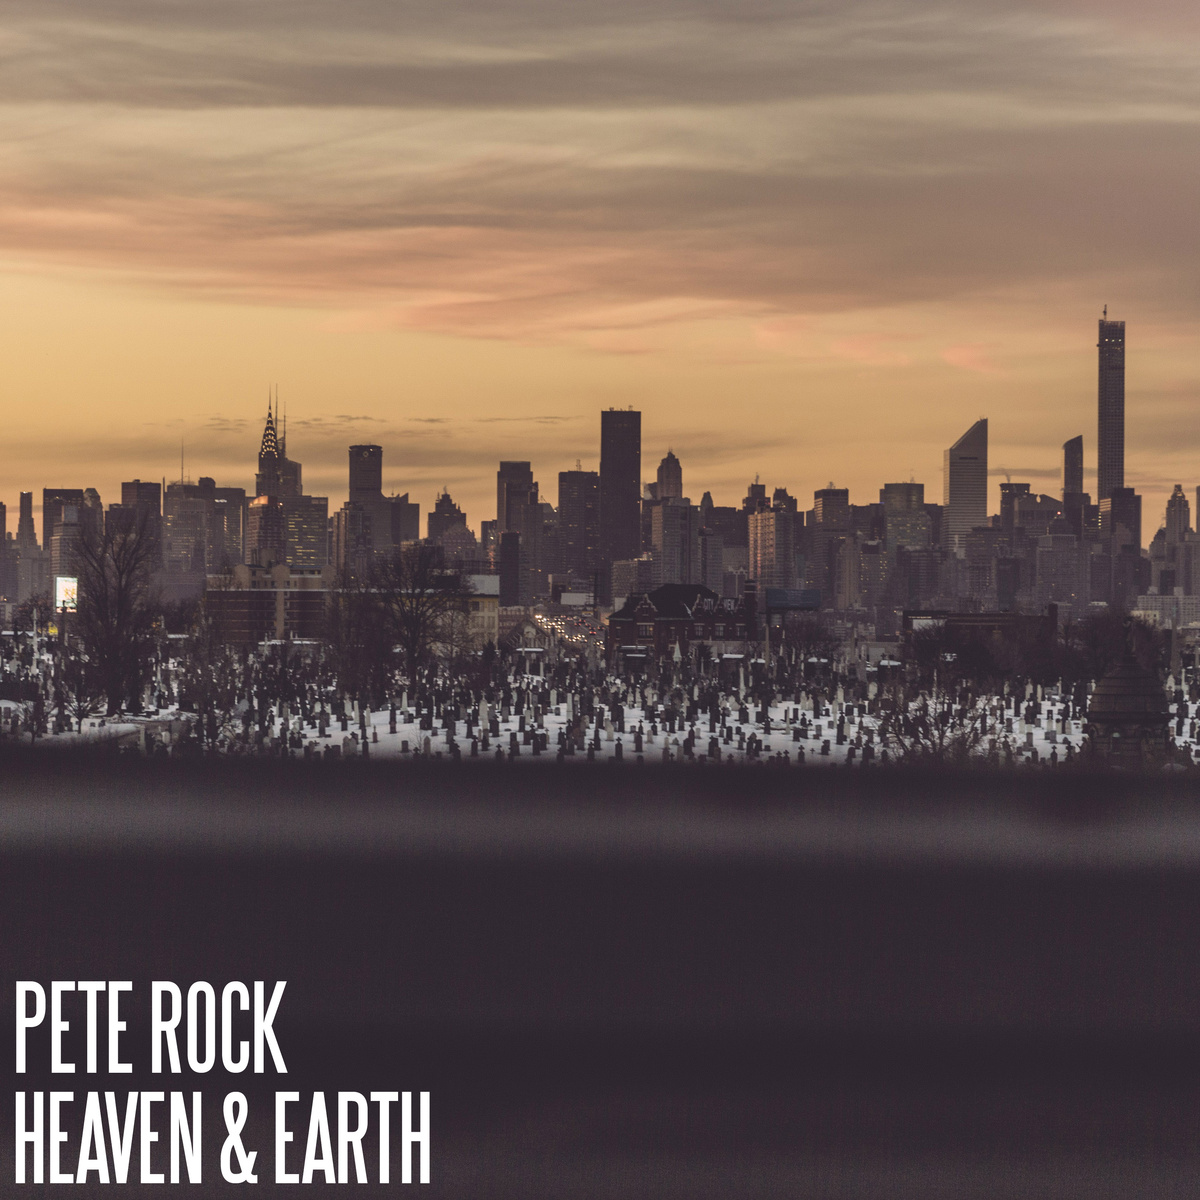 Pete_rock_-_heaven___earth